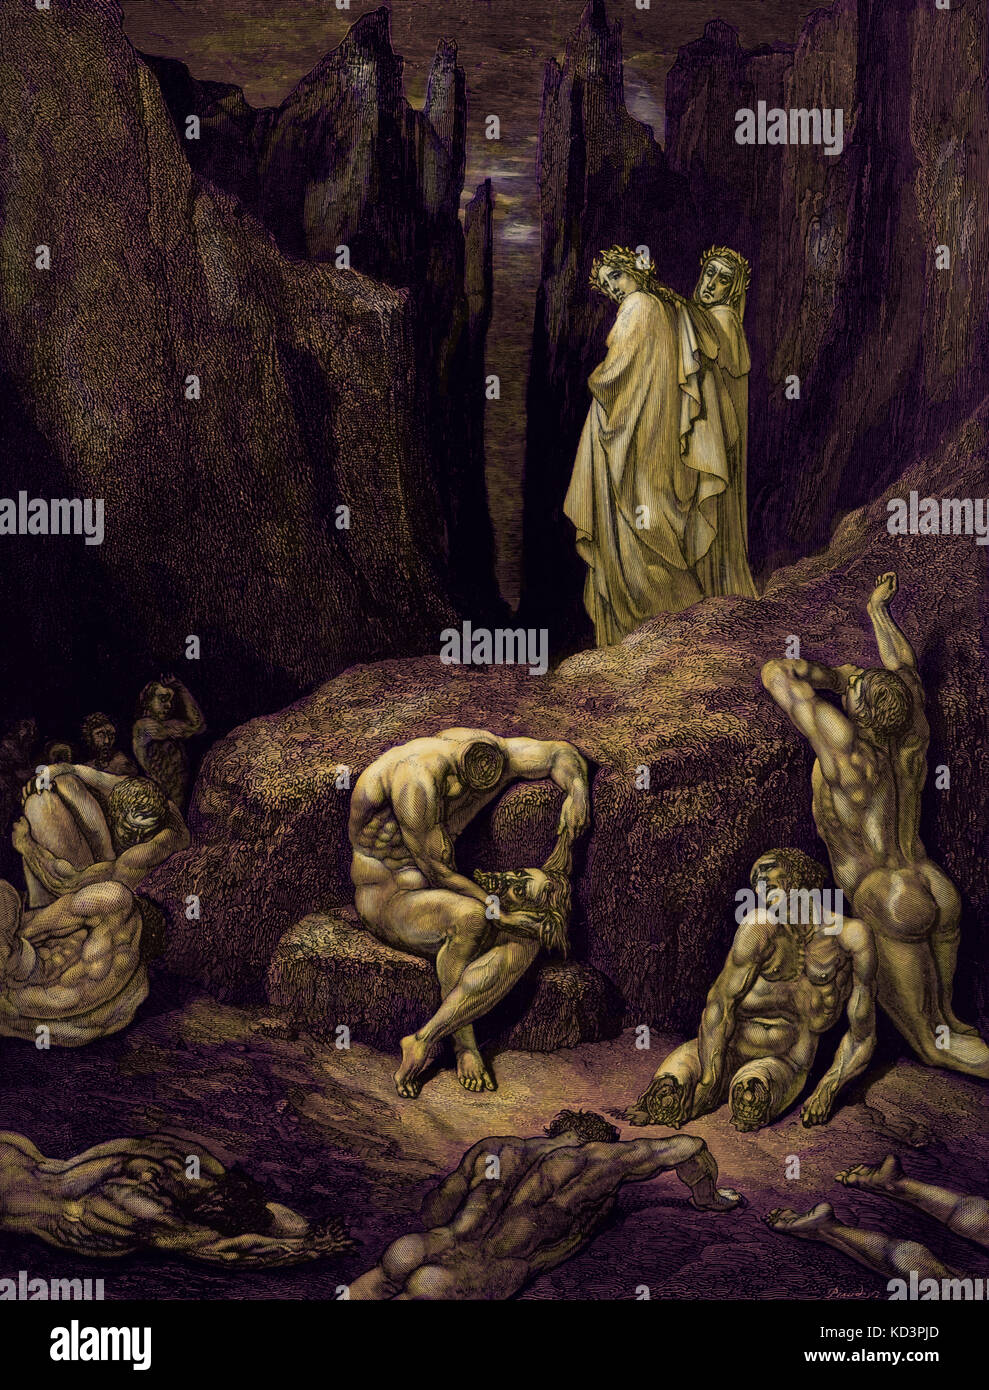 hell in dante alighieris the divine comedy The divine comedy describes dante's imagined journey through hell and  purgatory to heaven the inferno, the most popular and widely studied section of  the.